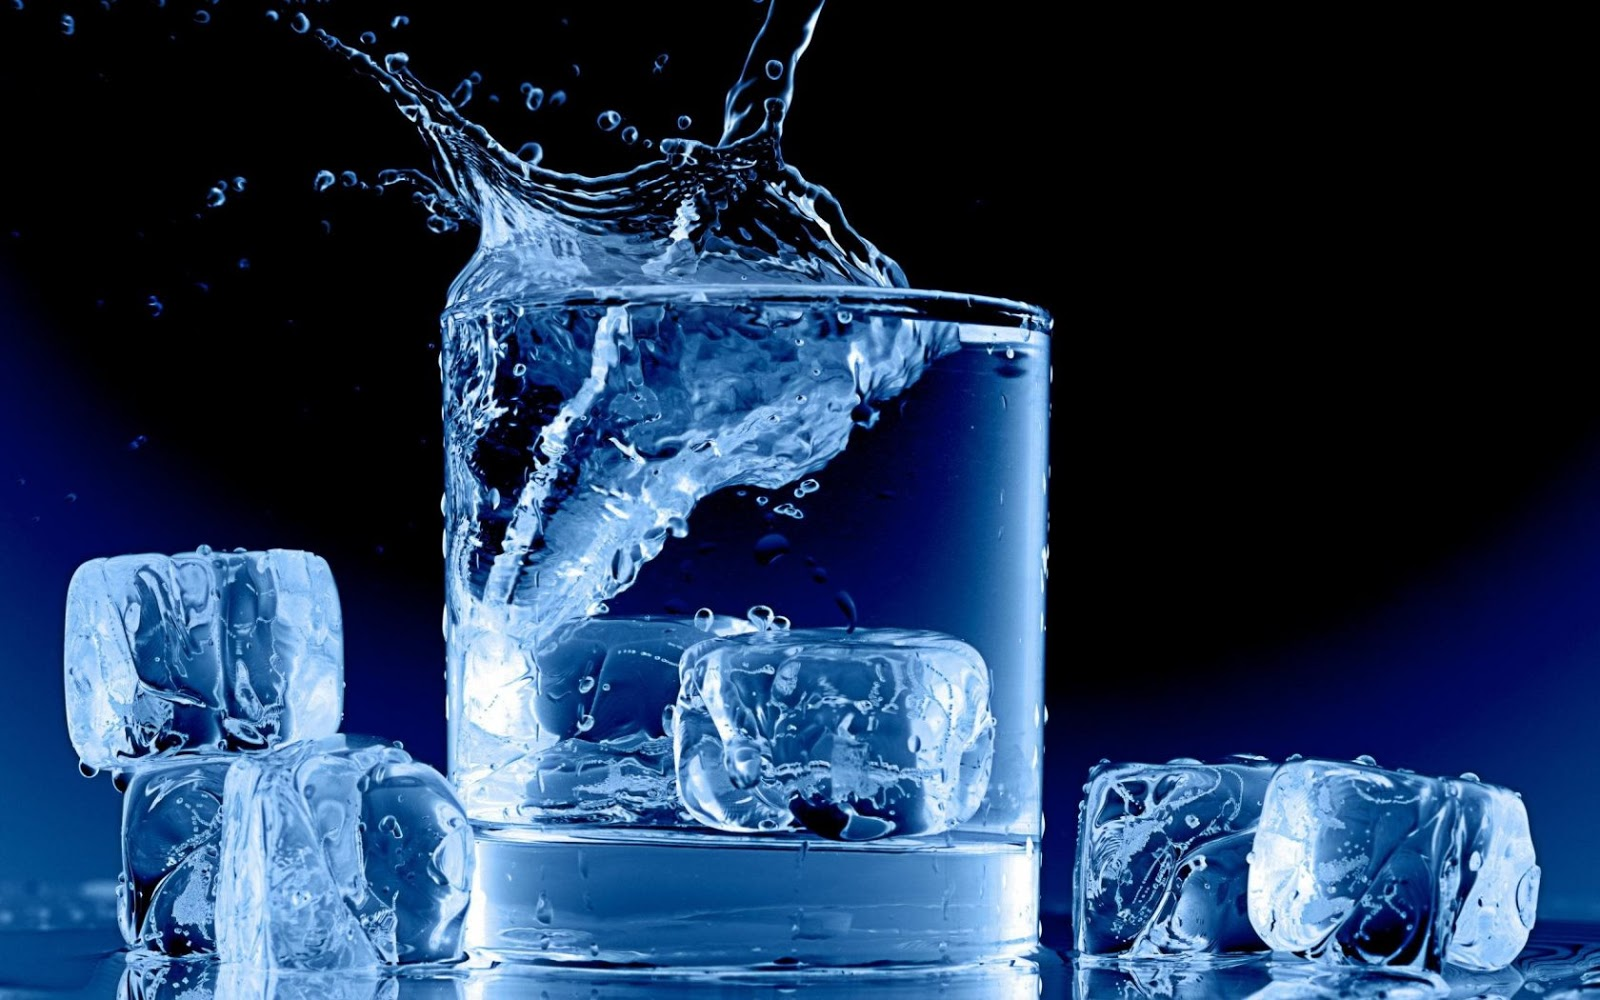 creative ice cubes hd wallpaper slwallpapers cute ice wallpaper 1600x1000